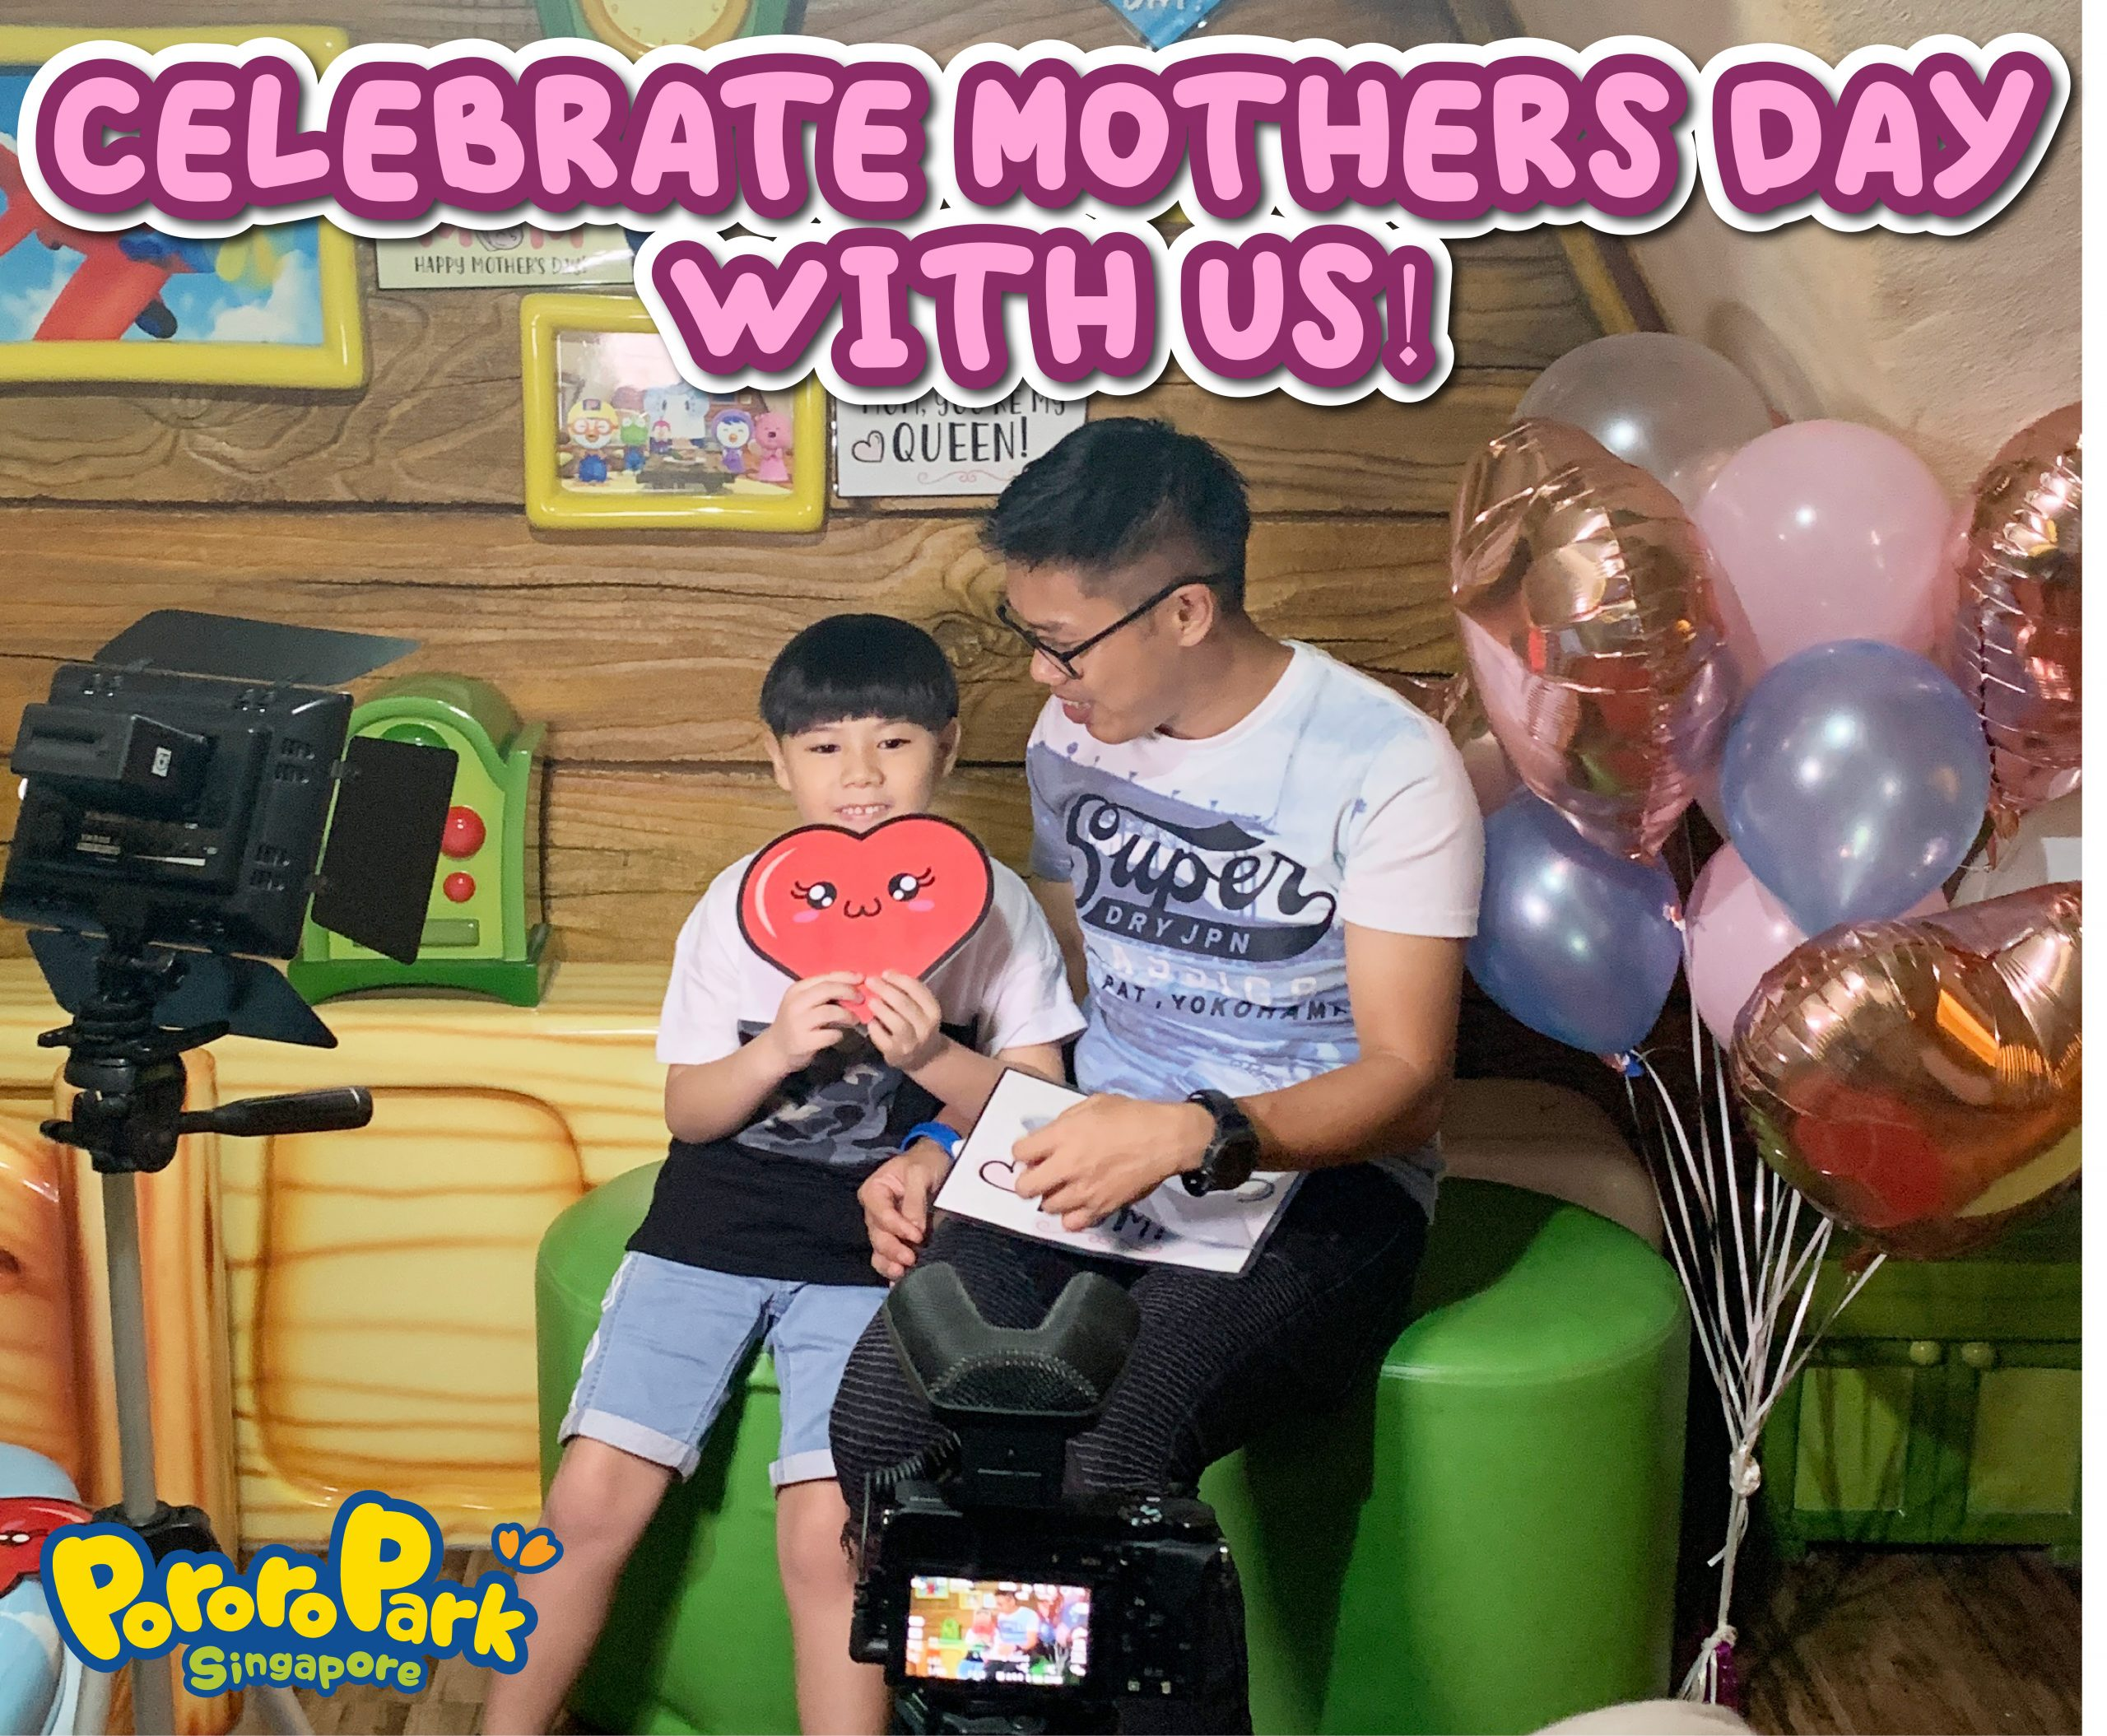 LDO Pororo Mothers Day 3000x250  scaled